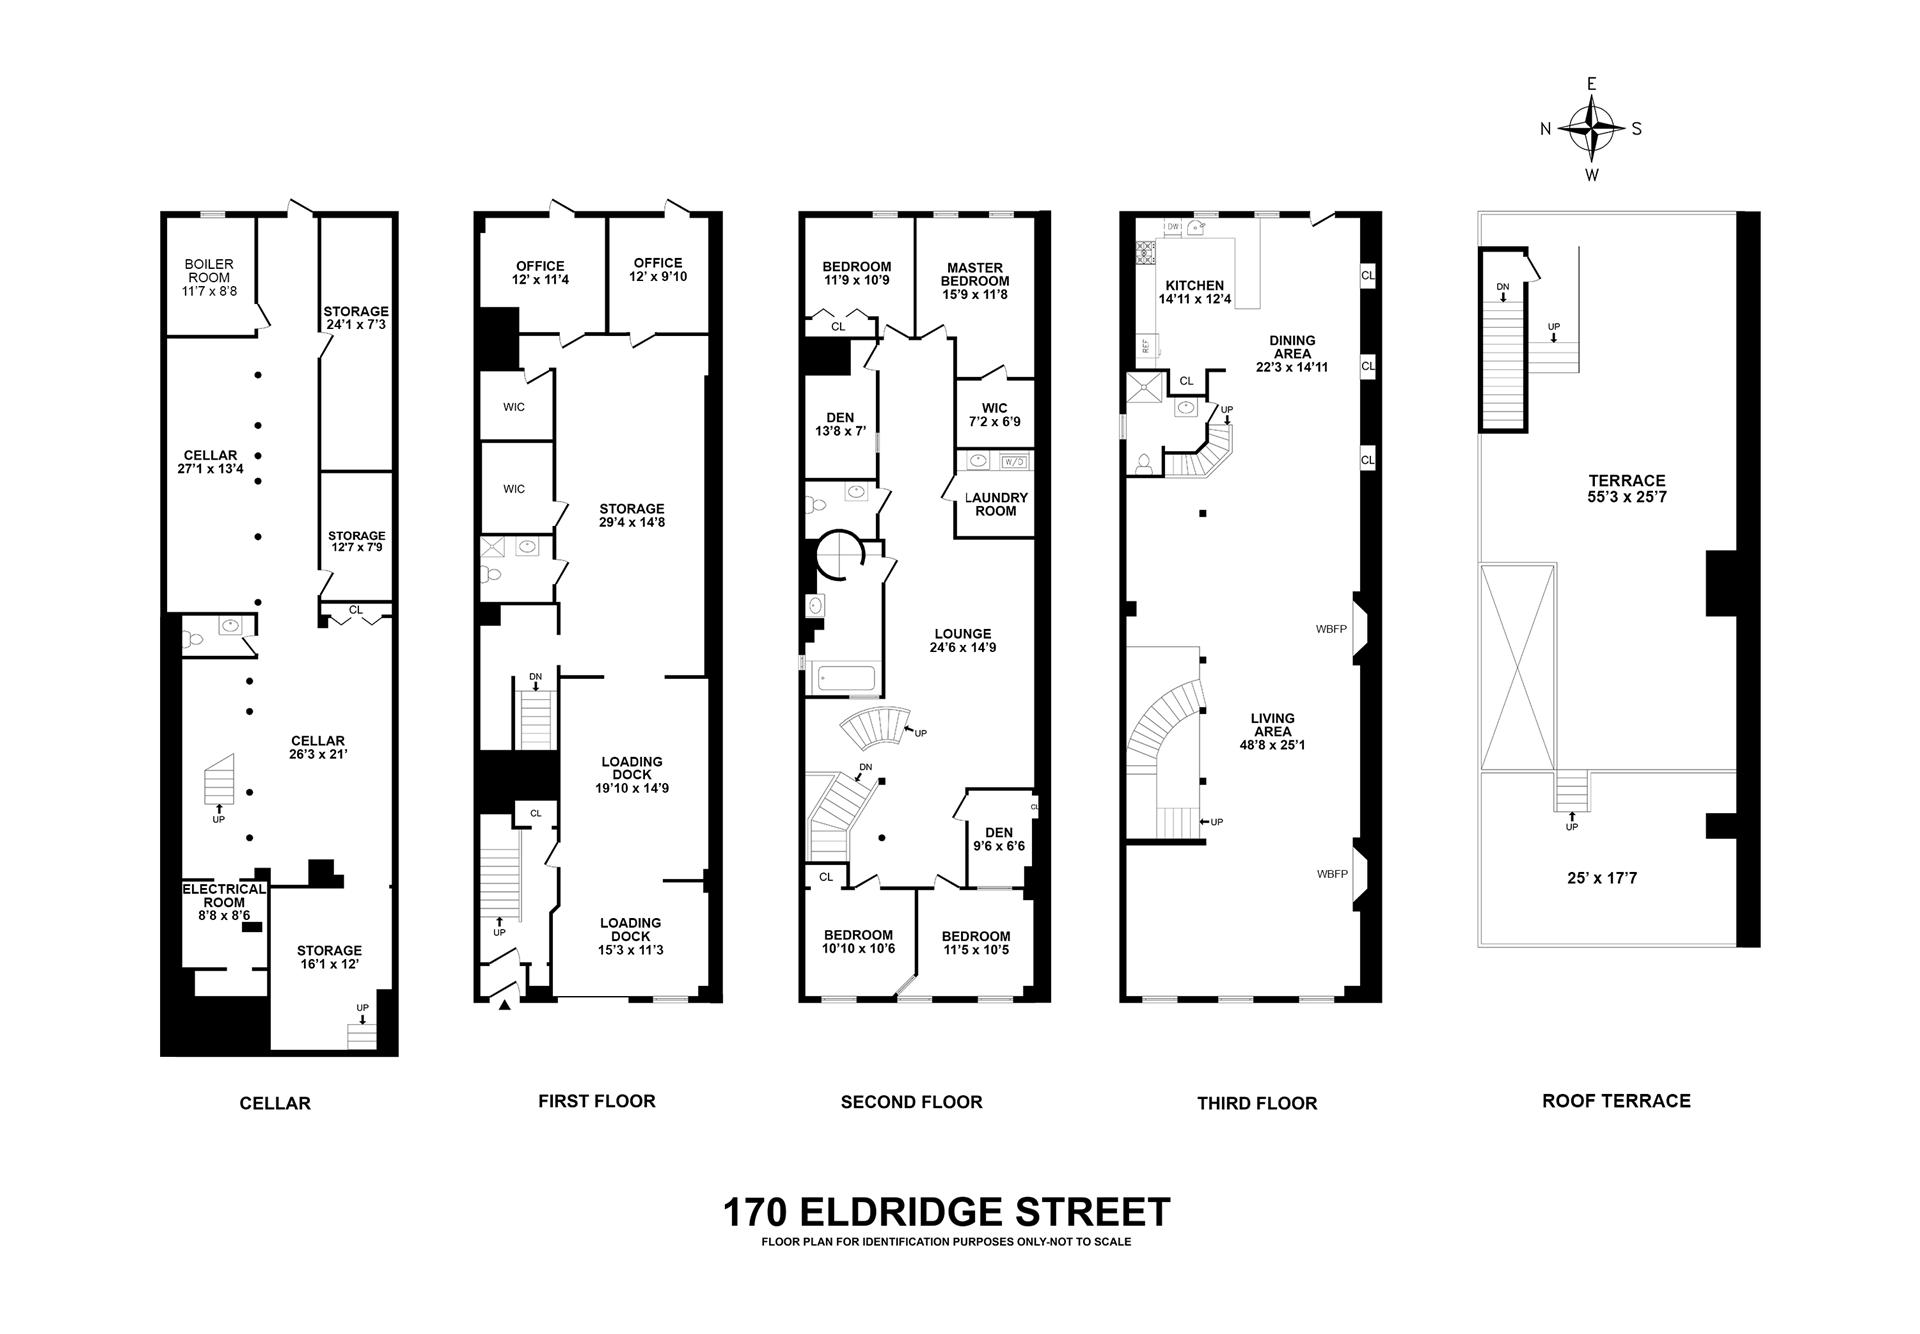 Floor plan of 170 Eldridge St - Lower East Side, New York